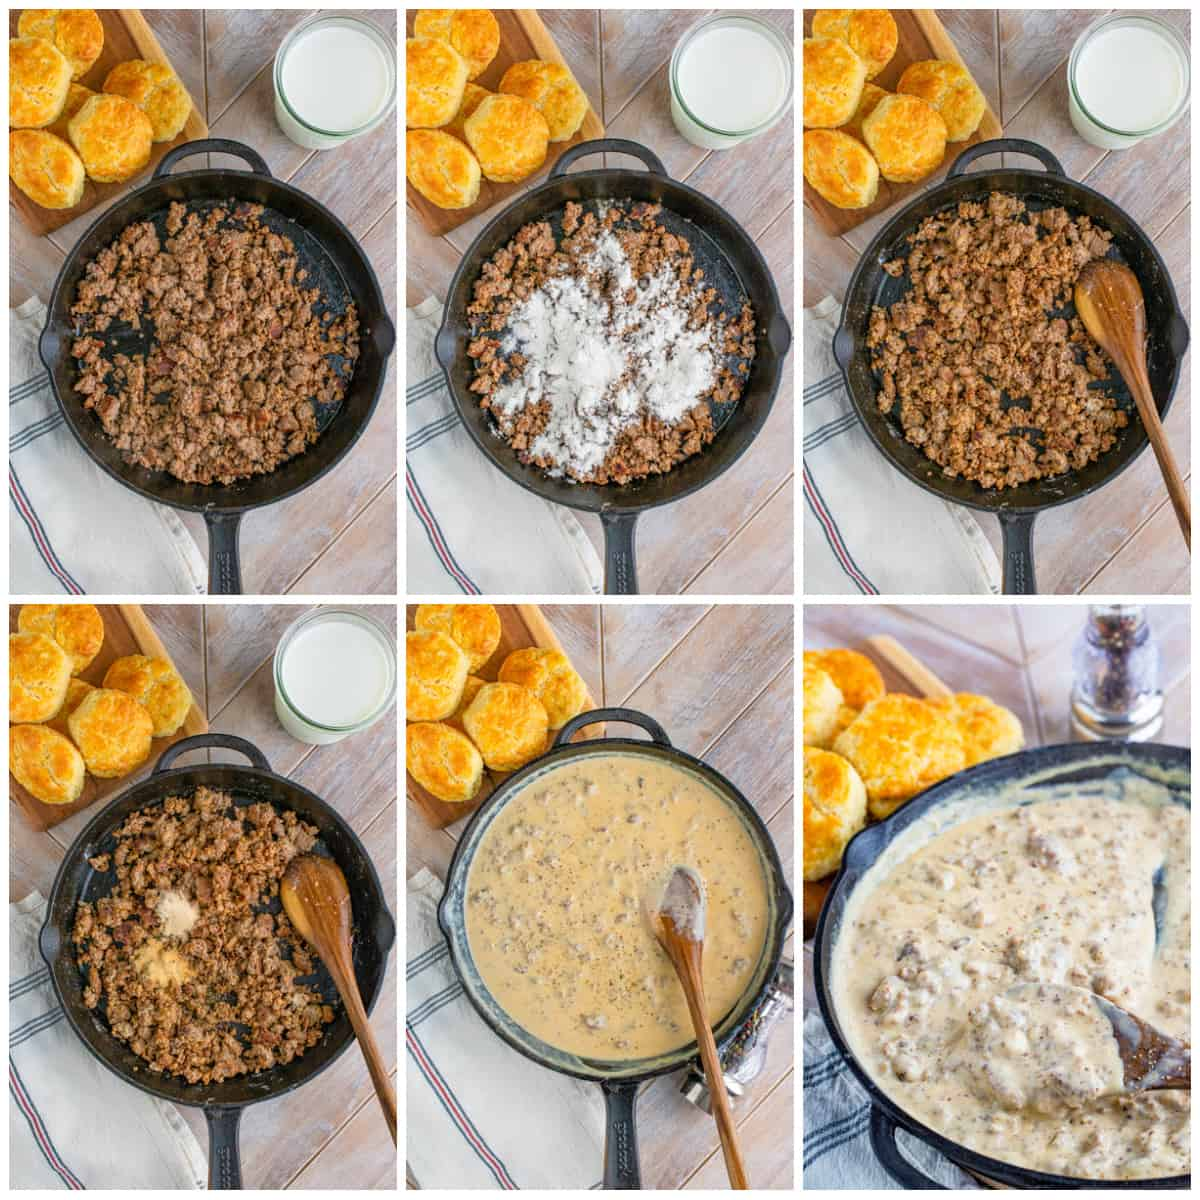 Step by step photos on how you make a Biscuits and Gravy Recipe